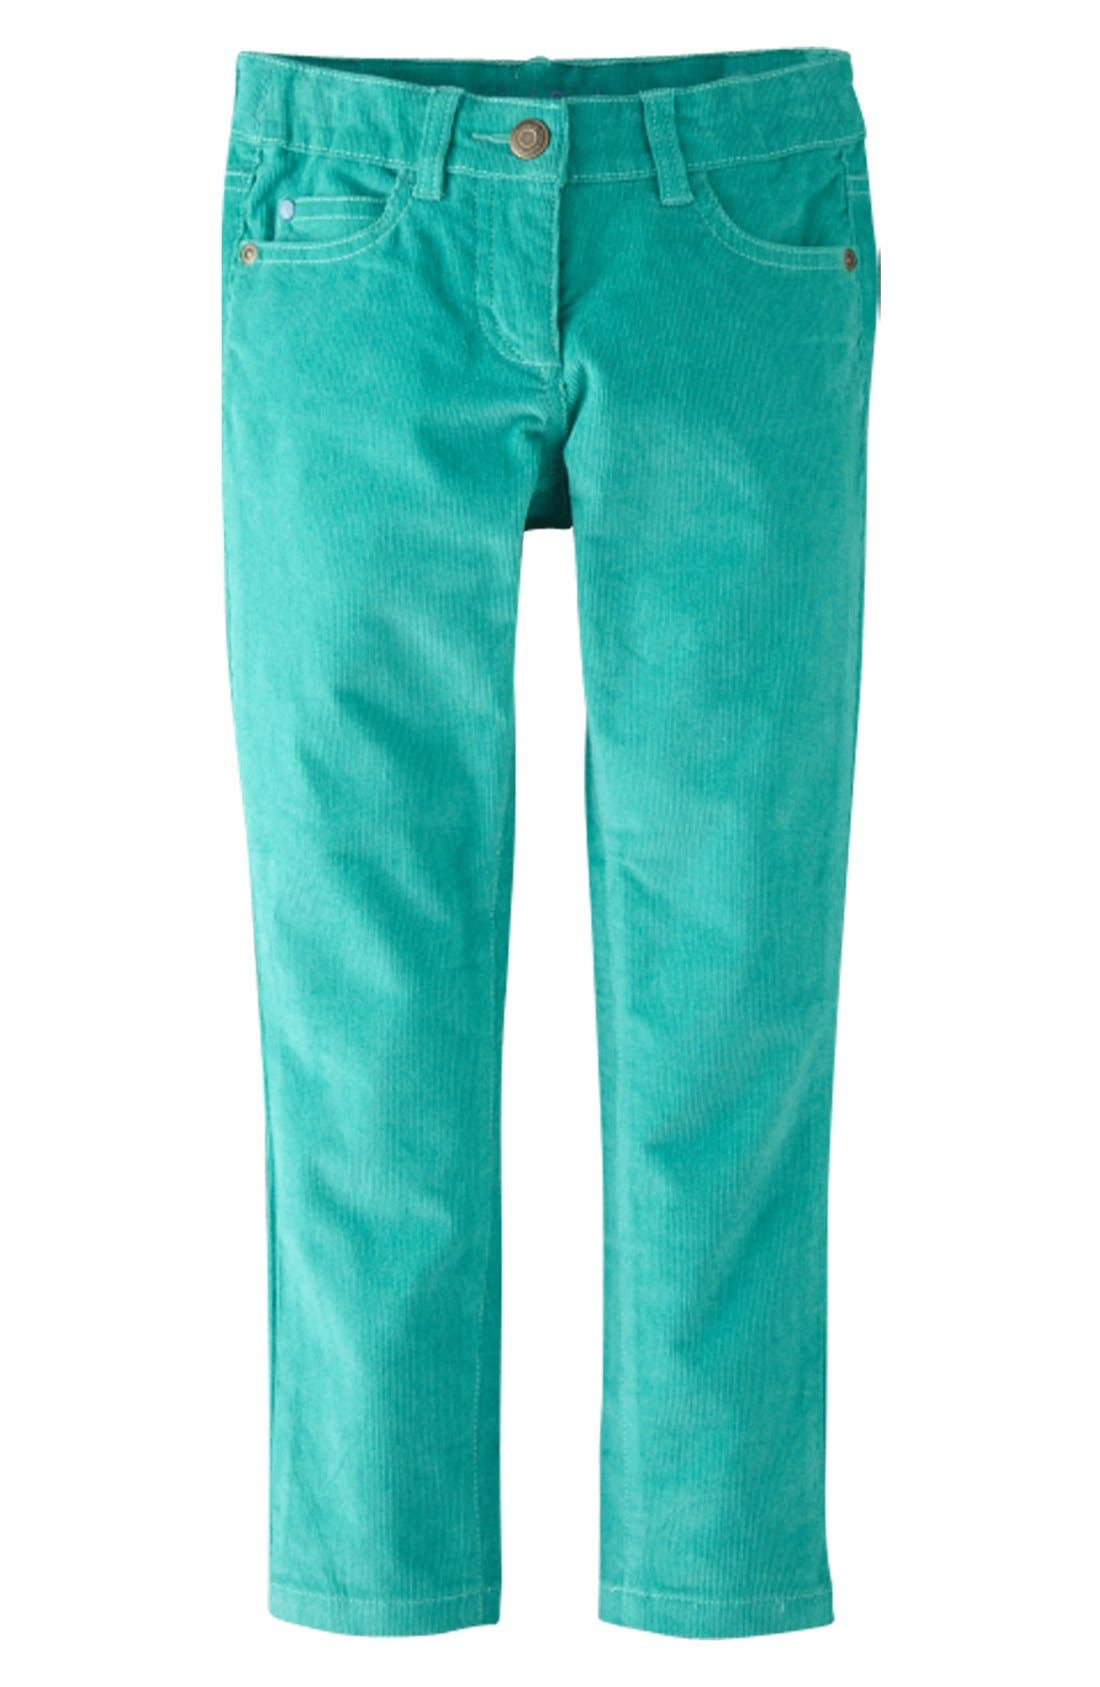 Main Image - Mini Boden Slim Fit Corduroy Pants (Toddler Girls, Little Girls & Big Girls)